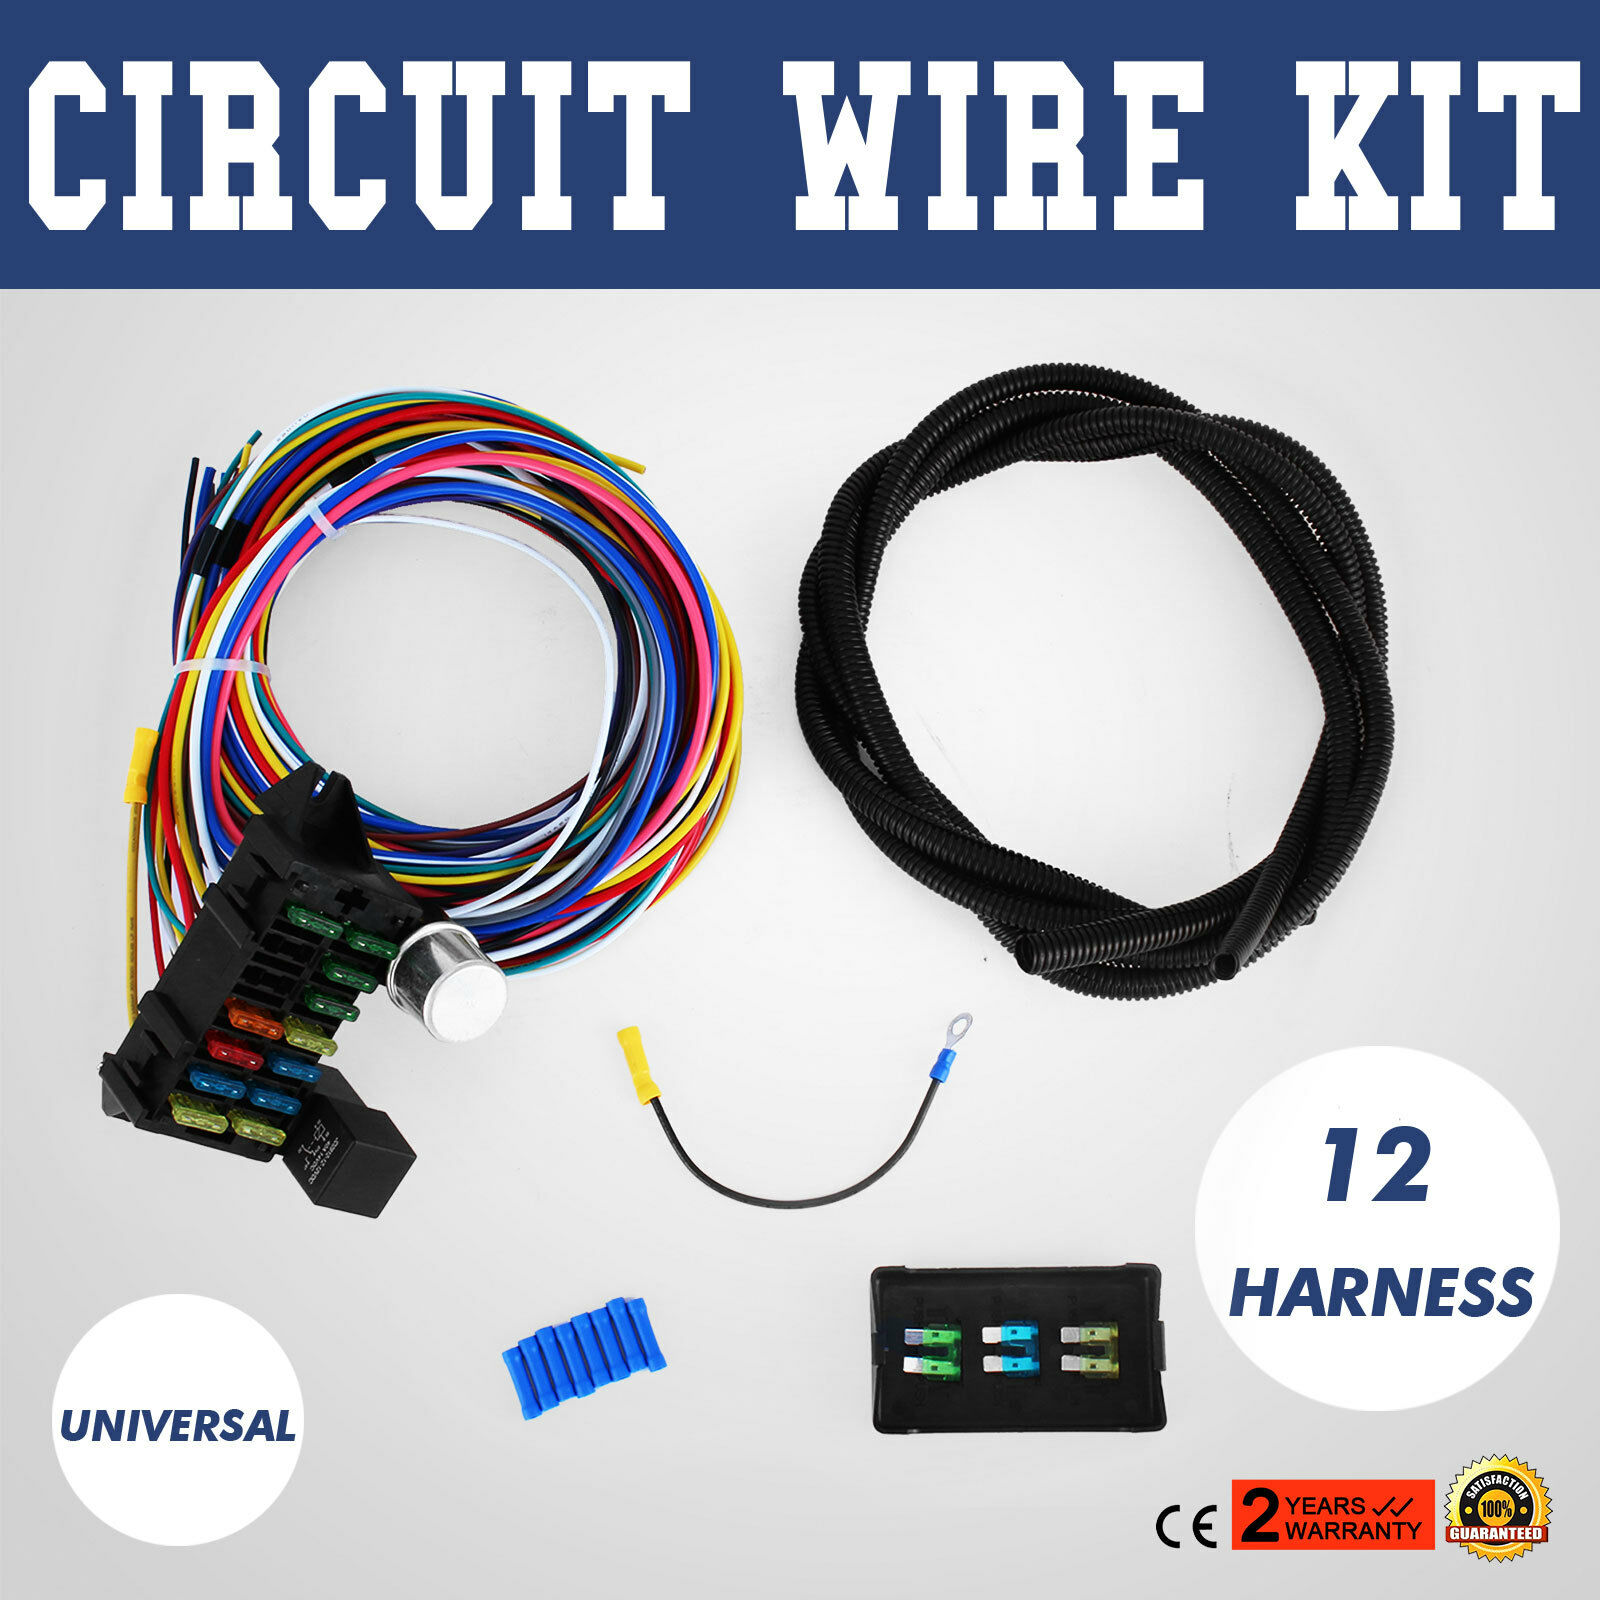 12 Circuit Universal Wire Harness Muscle Car Hot Rod Street New Automotive Wiring Kit Xl Wires 1 Of 12only 3 Available